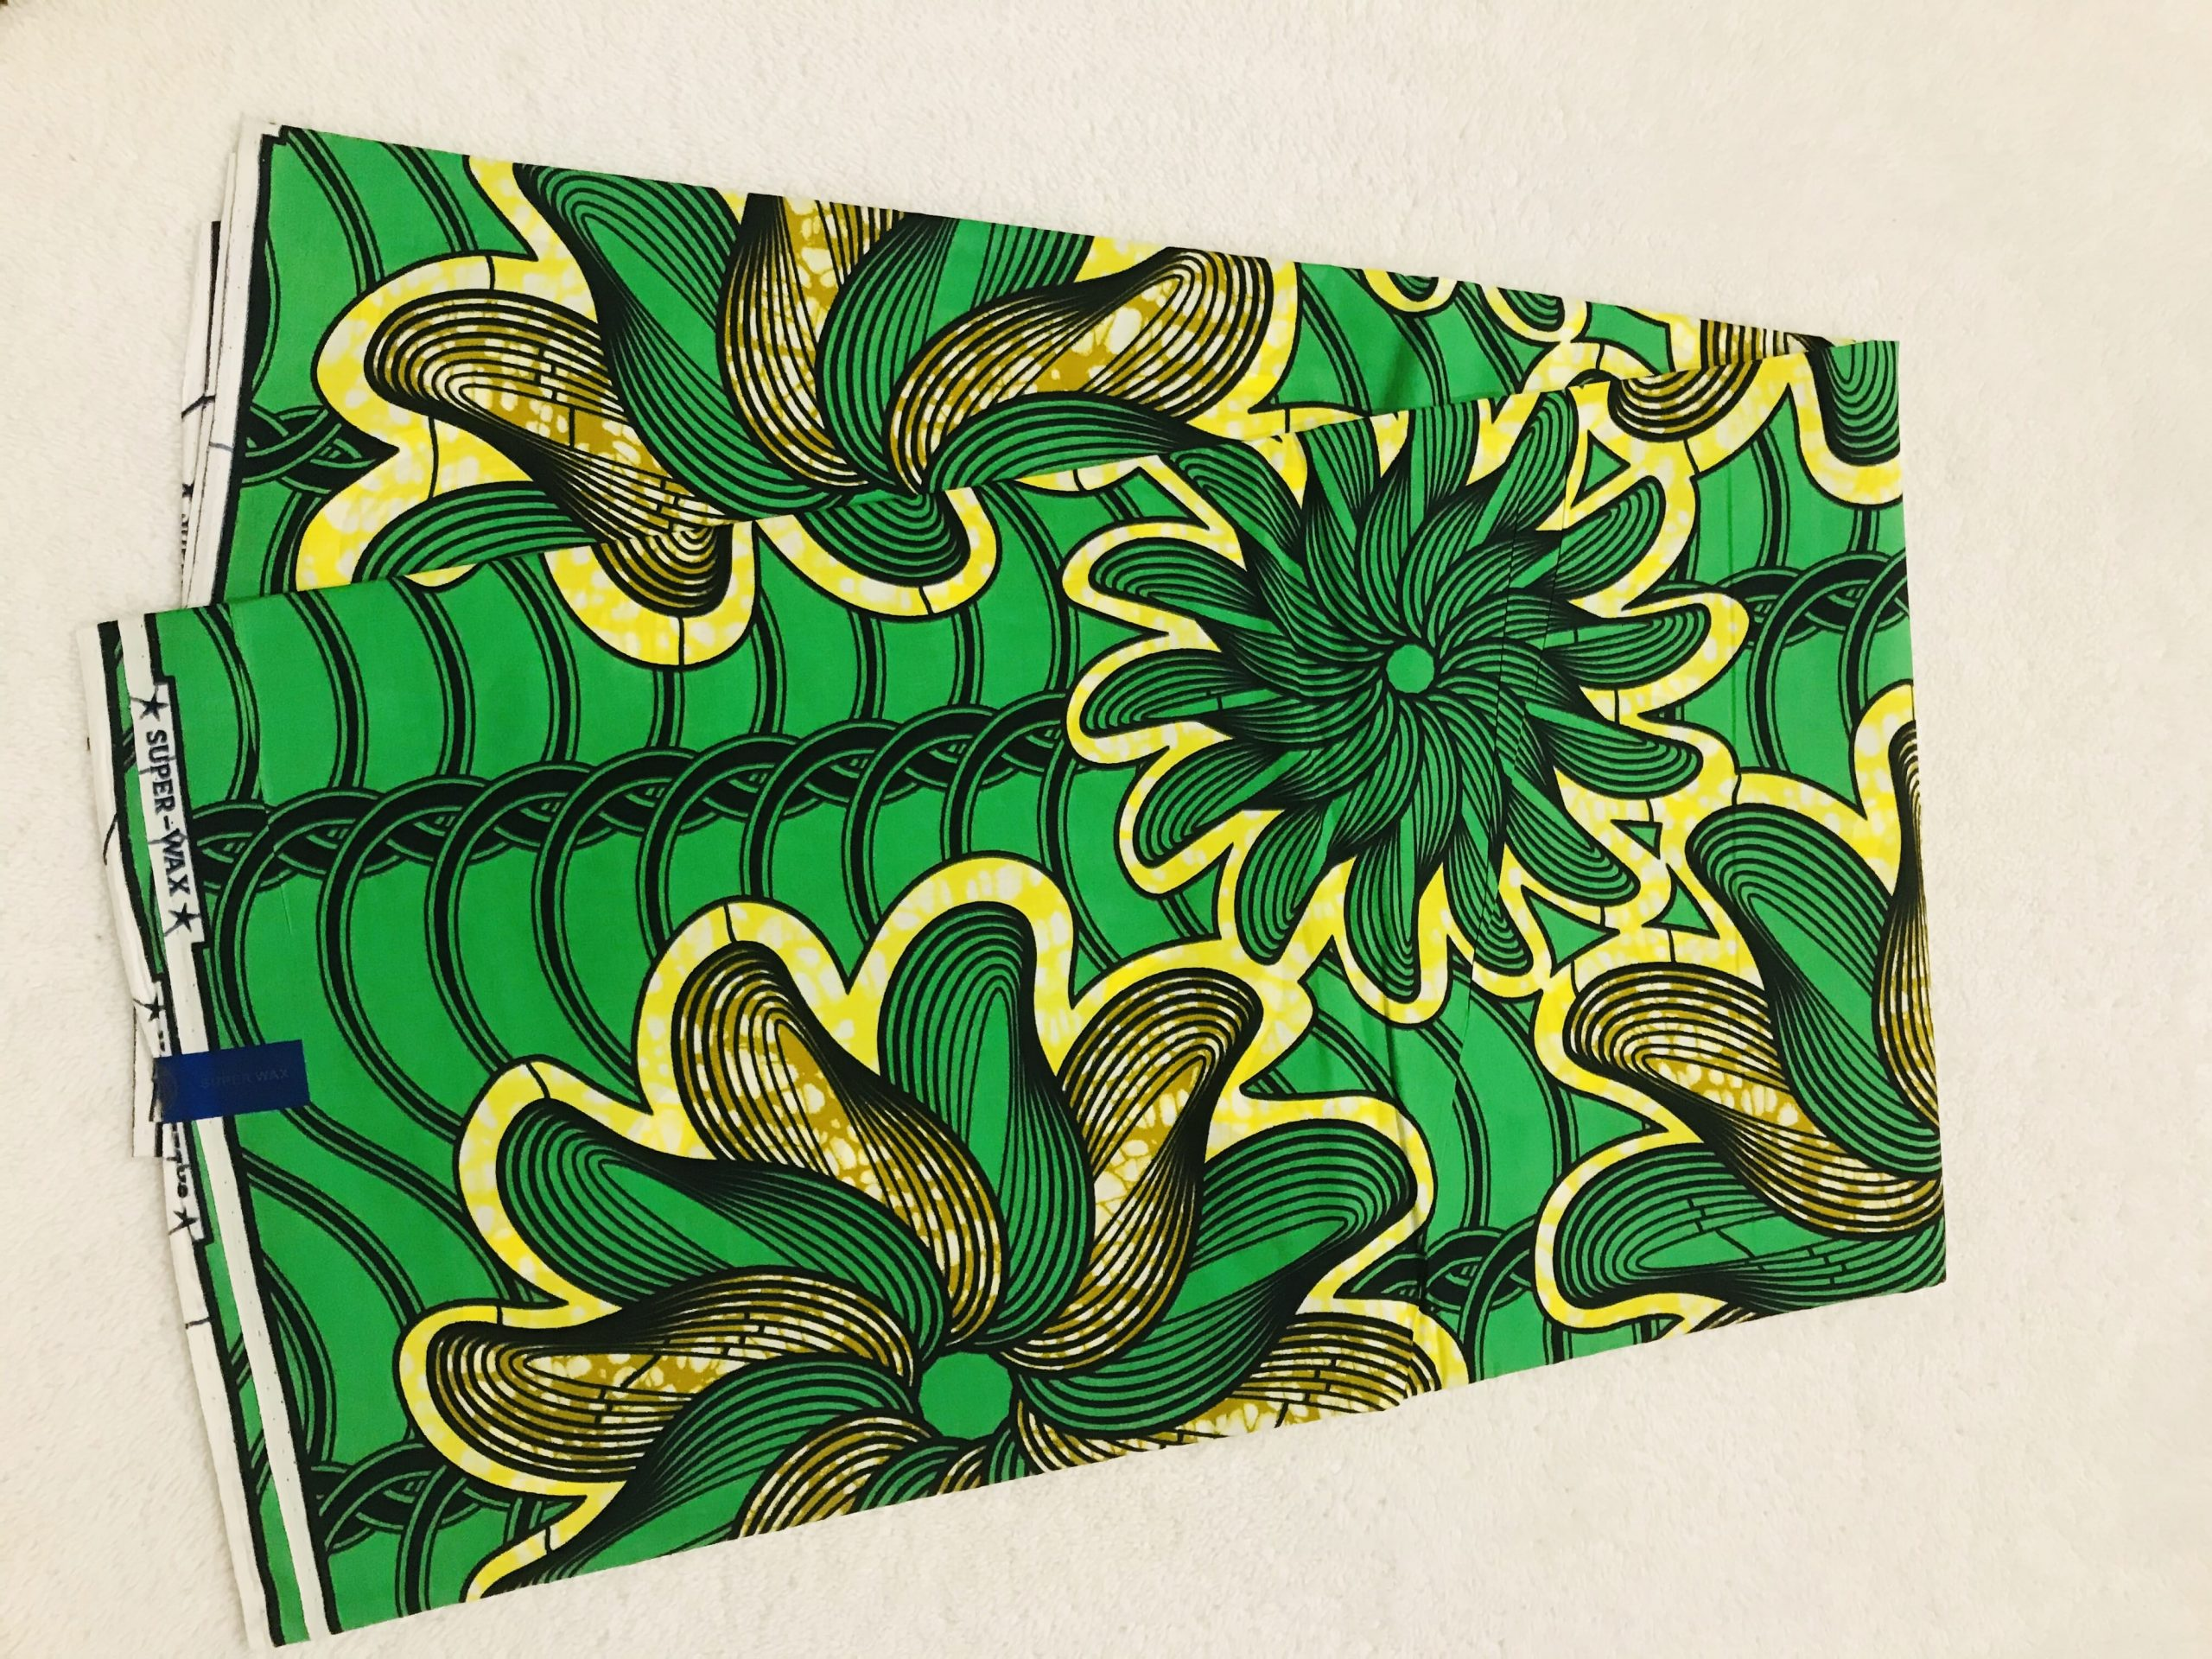 African Wax 6 yards green yellow and tan flowers design real African print. Ankanra 100% cotton material.